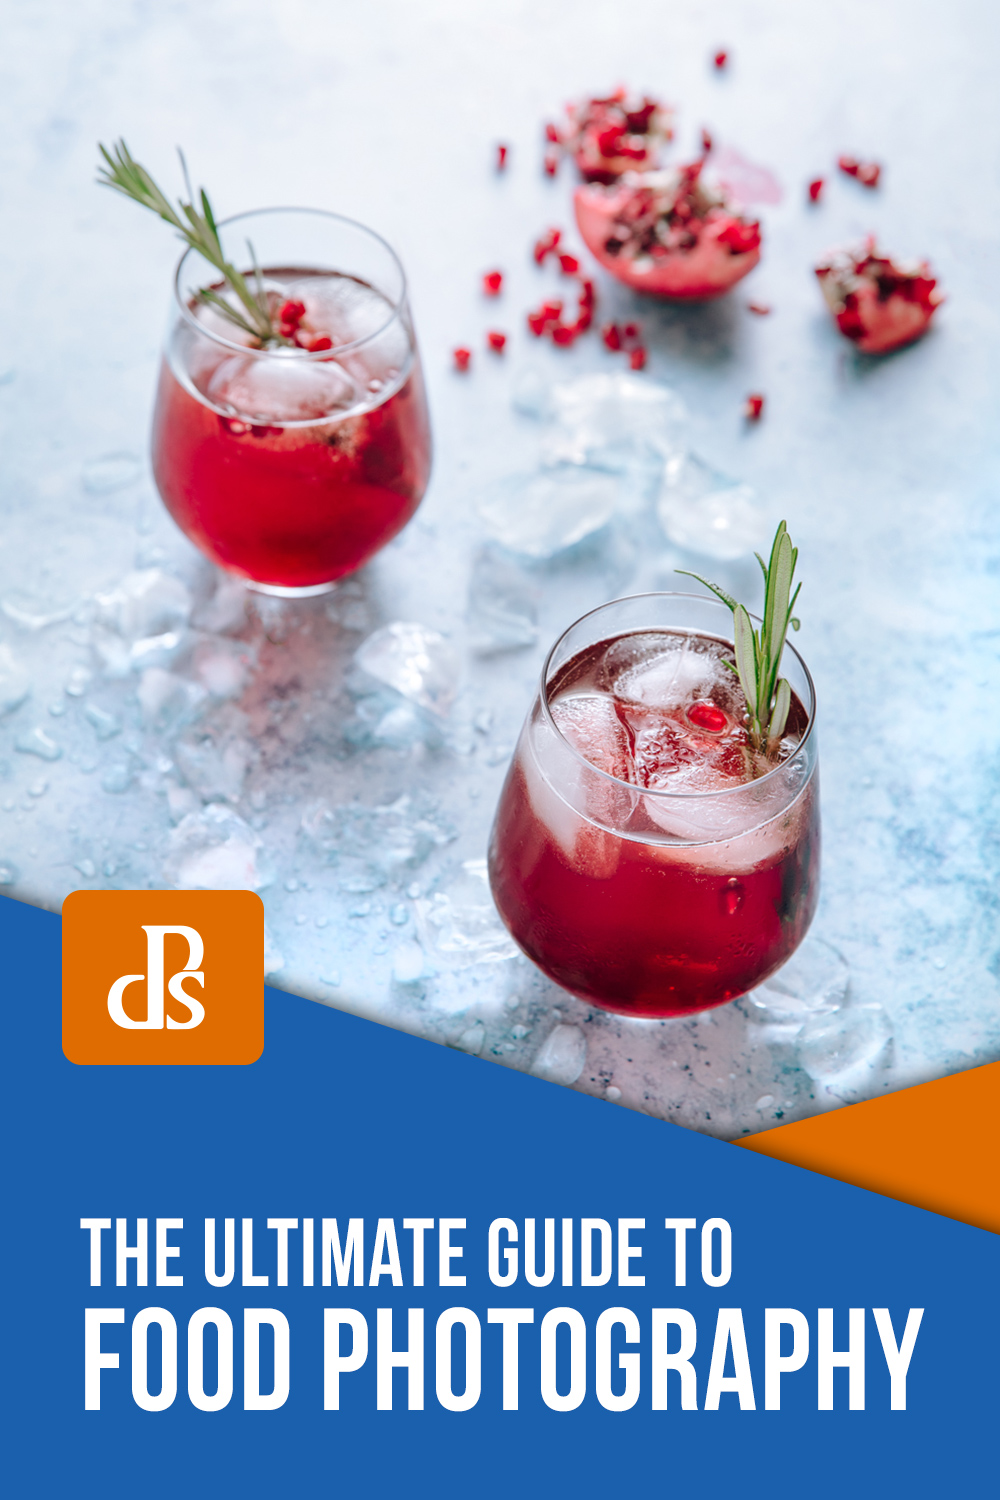 The dPS Ultimate Guide to Food Photography